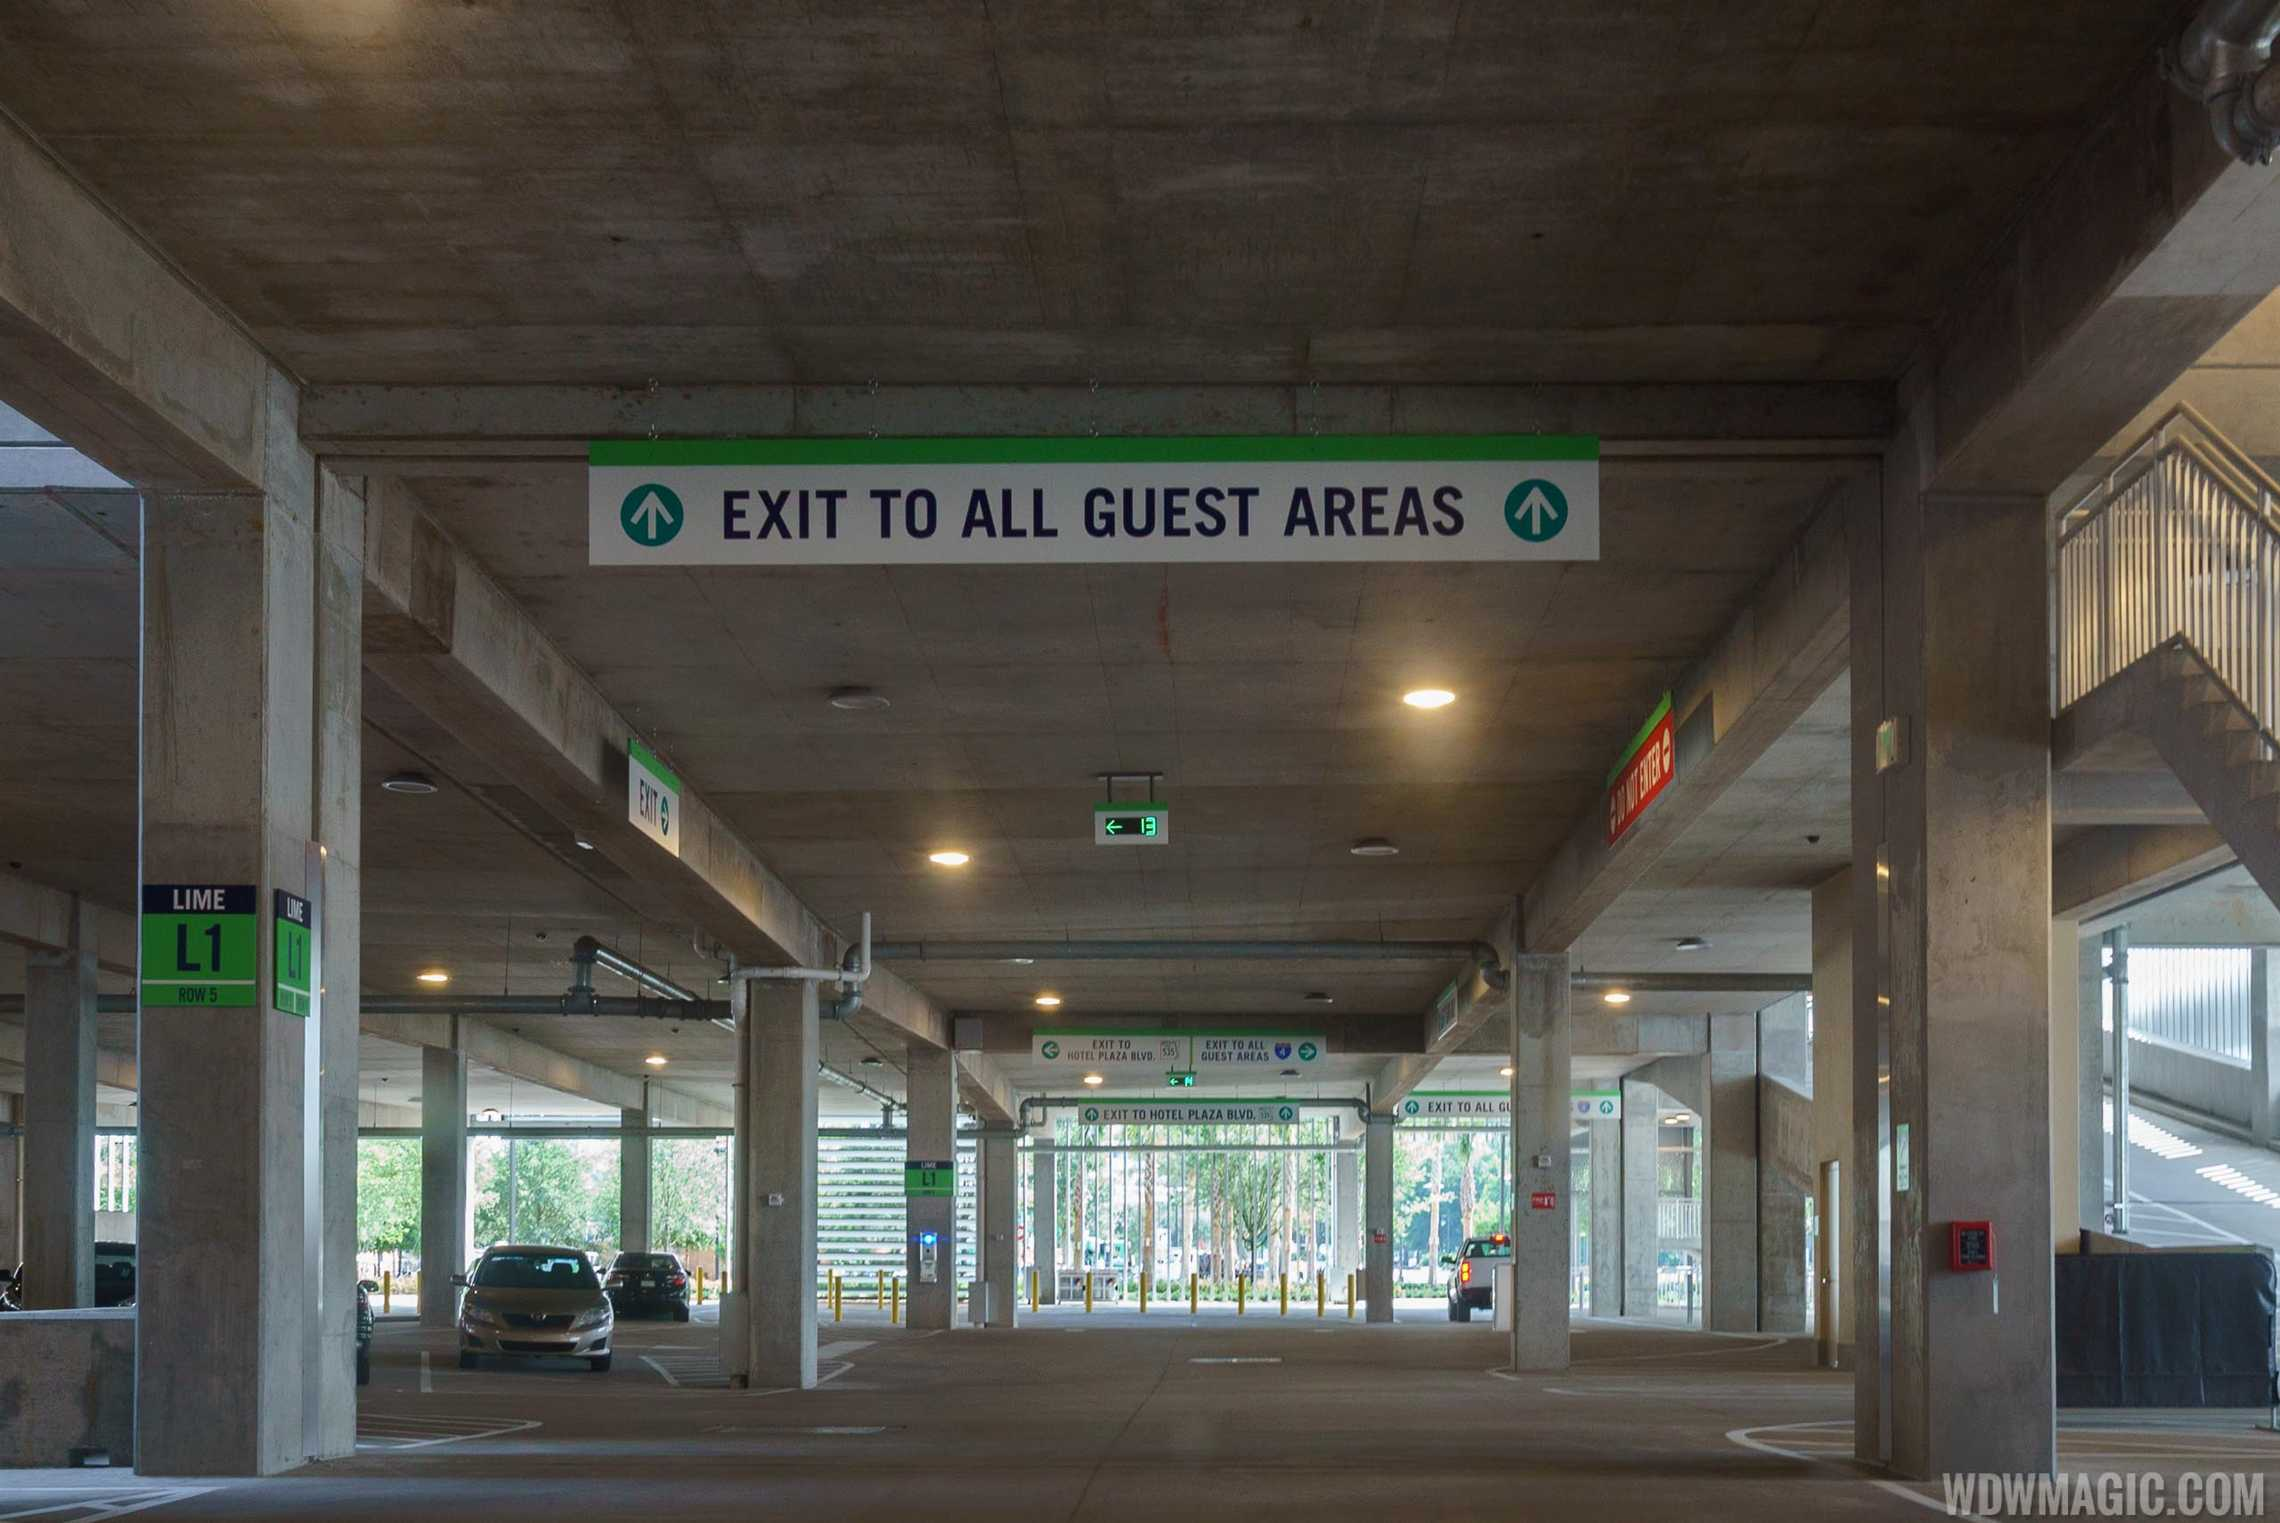 Exit signage from the Lime Garage